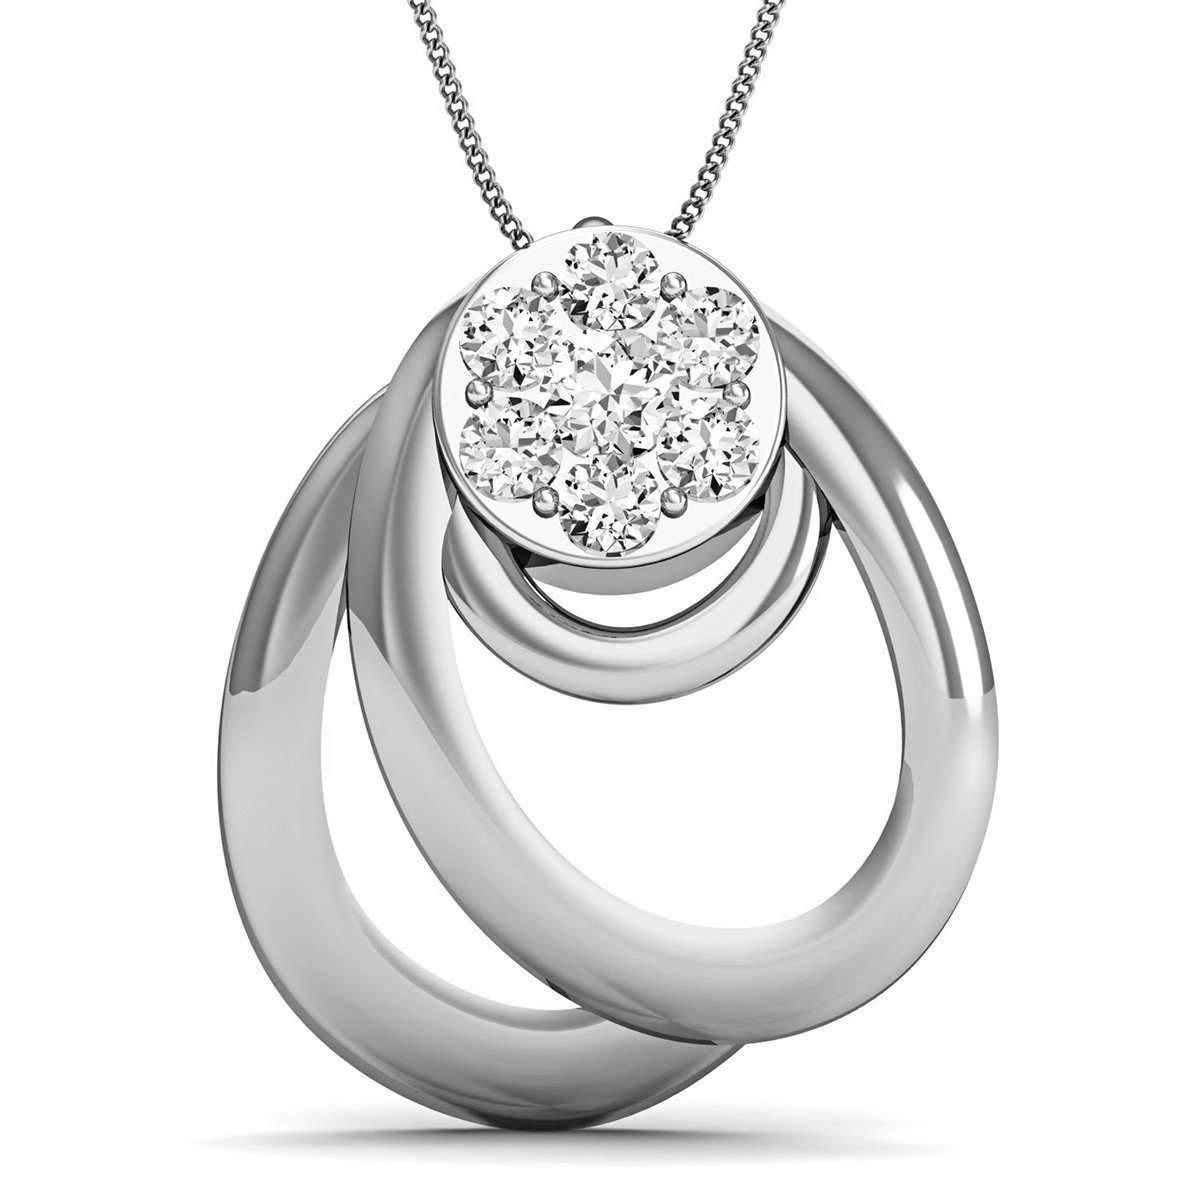 Diamoire Jewels Diamond and 10kt White Gold Nature Inspired Designer Pendant by Diamoire mDIV1ZxV